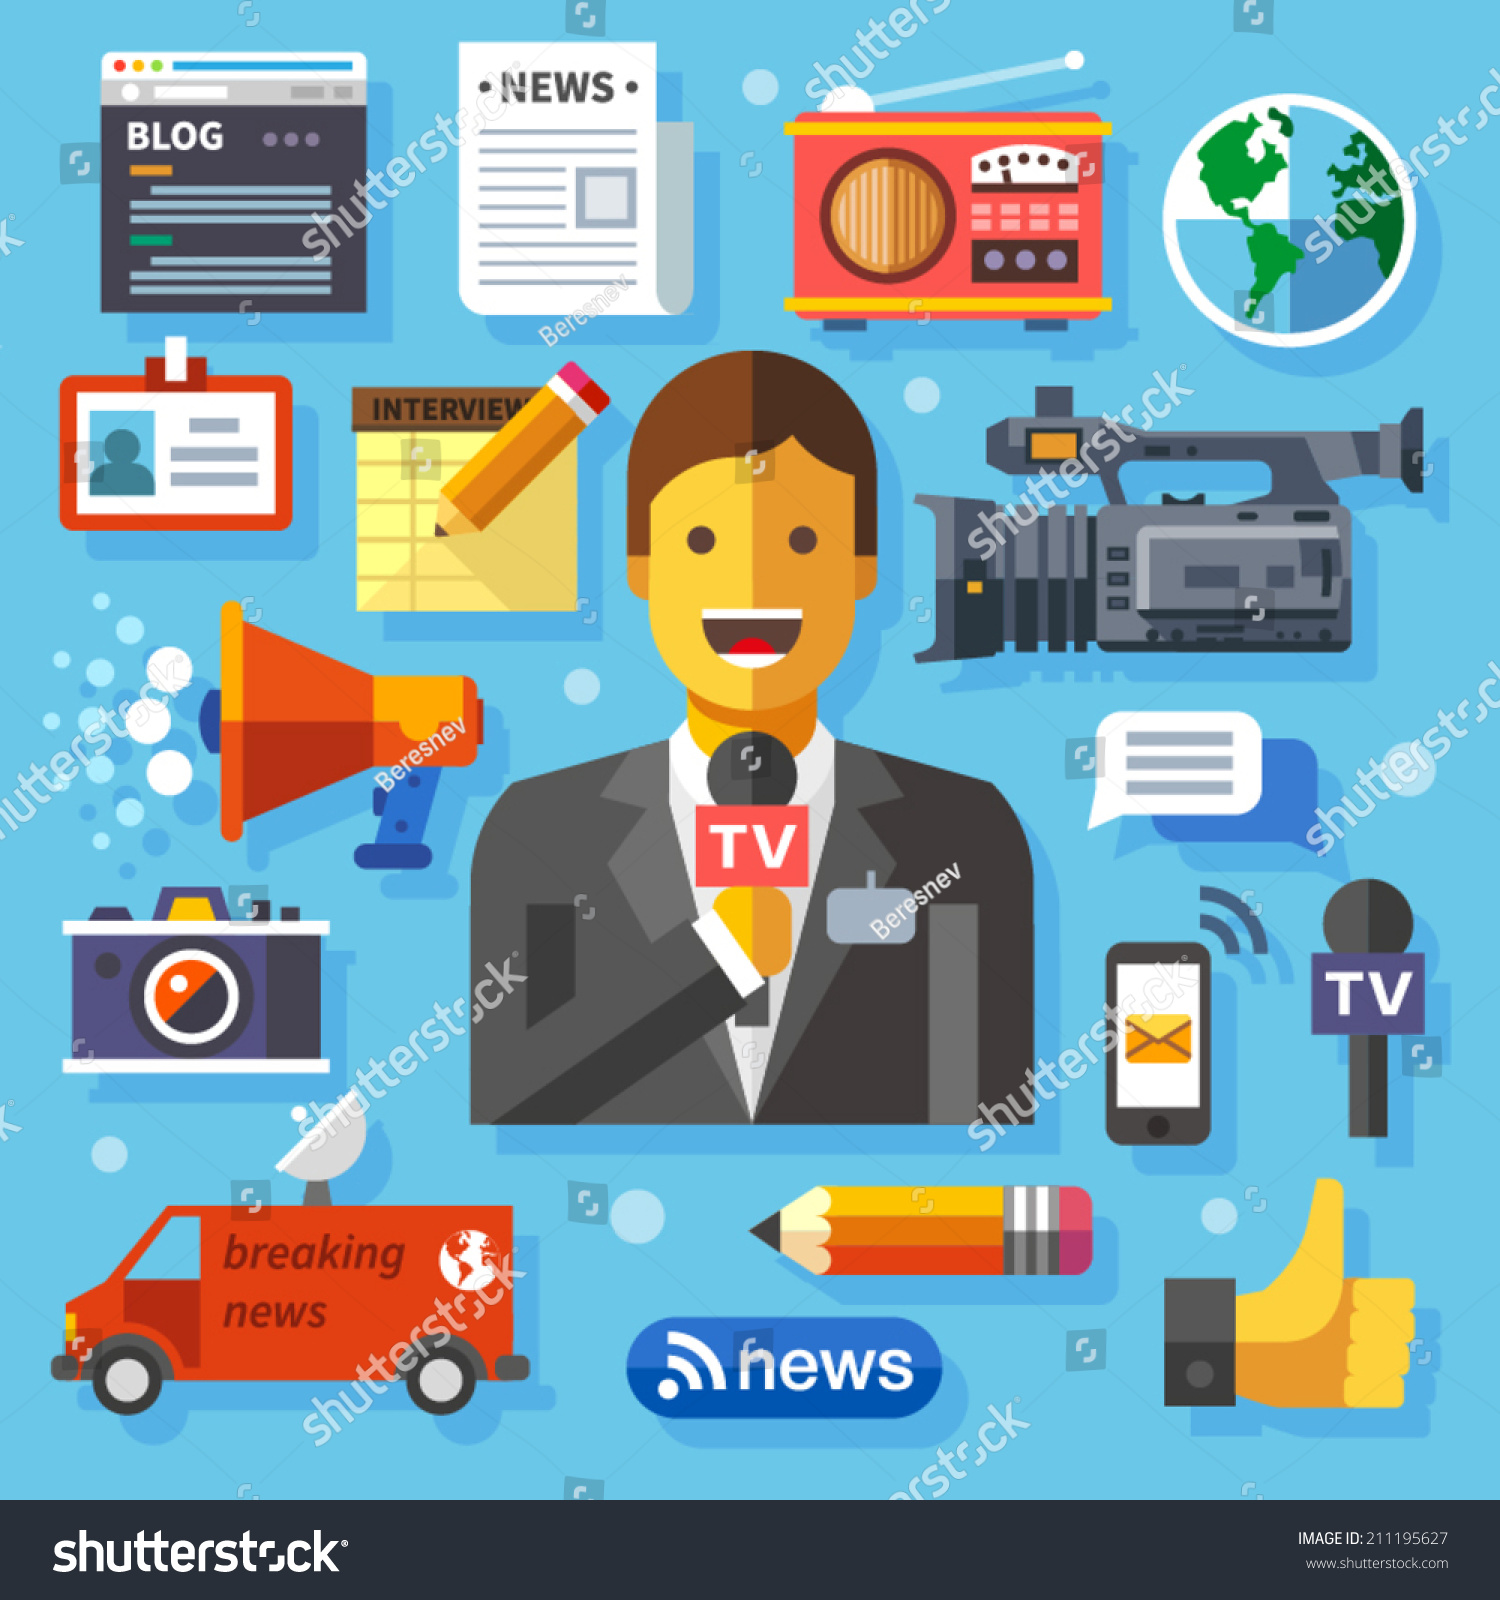 color vector flat icon set illustrations stock vector  color vector flat icon set and illustrations modern information technology and news release journalist